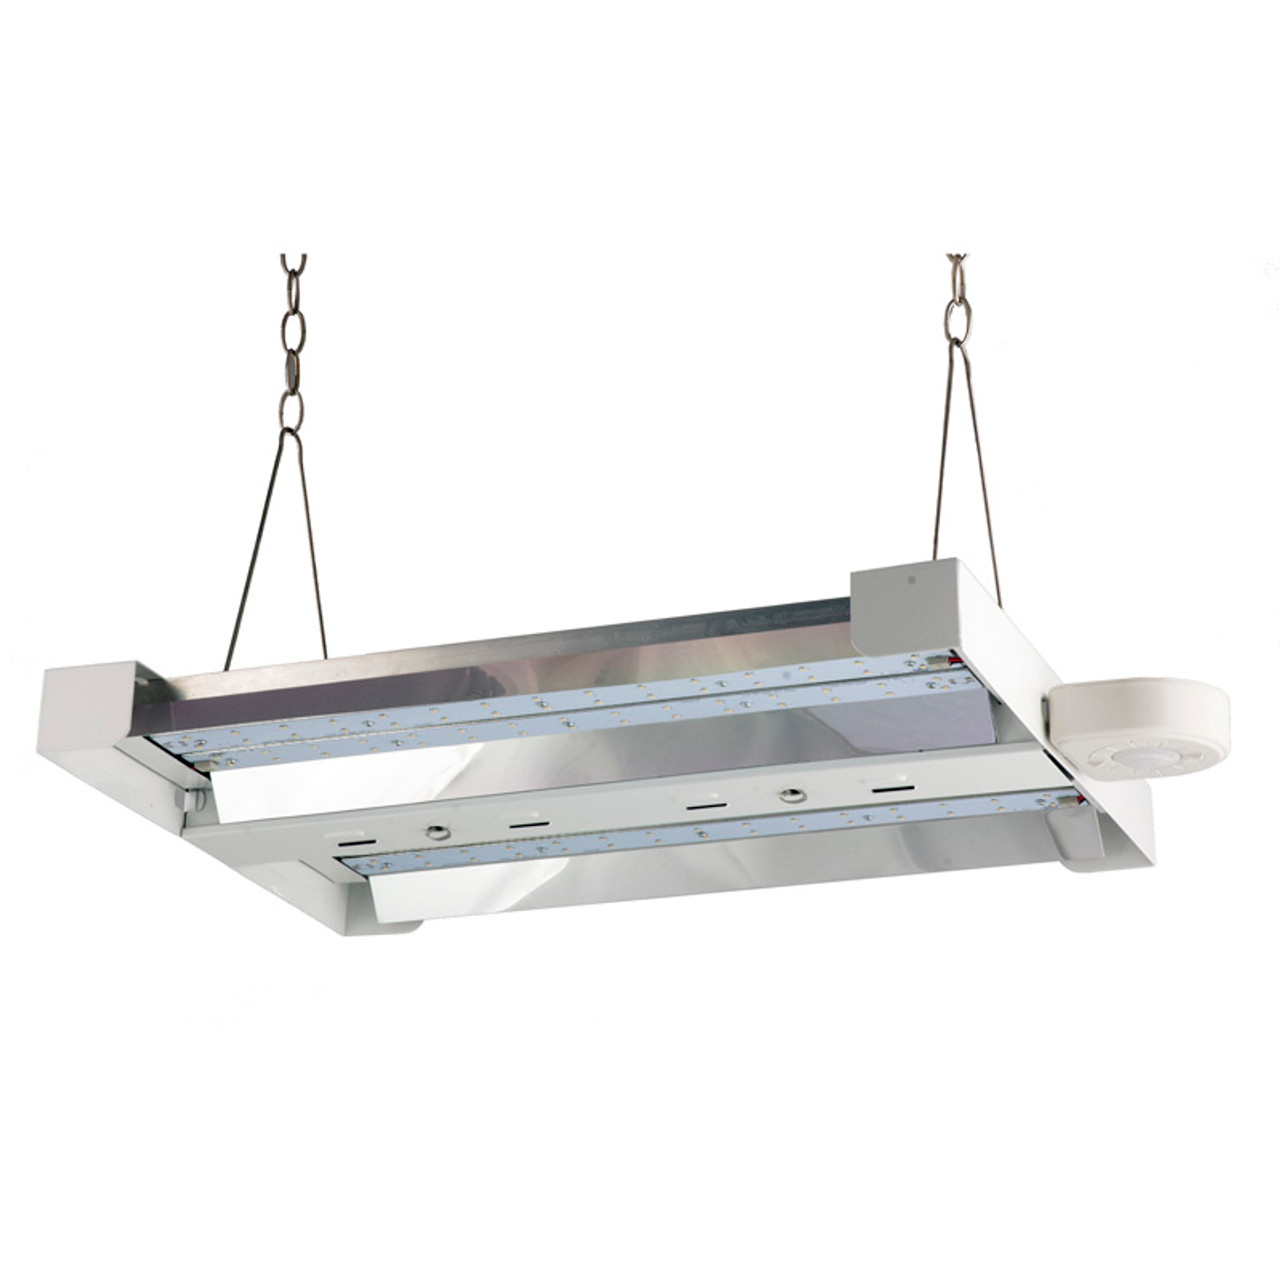 LED I-BEAM HIGH BAY with Occupancy sensor